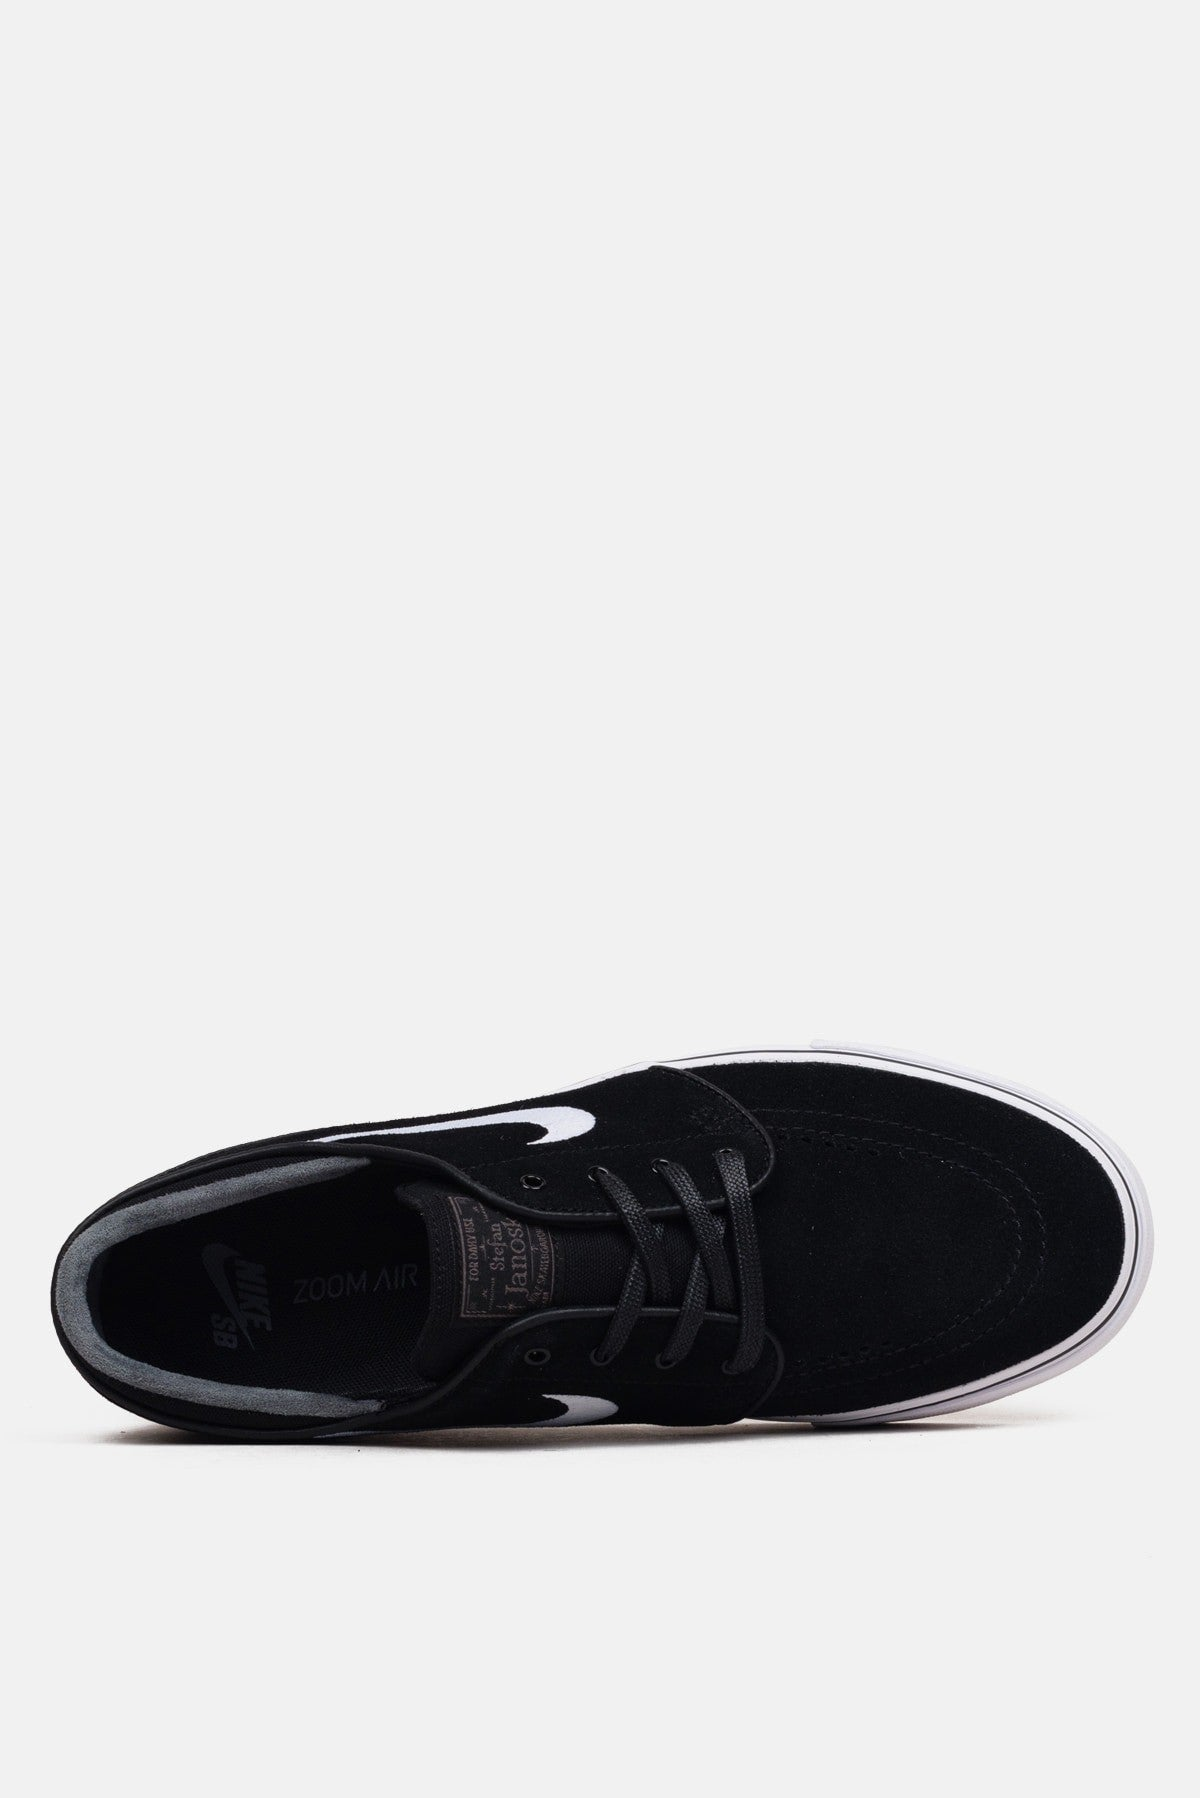 5225a735828 Nike SB Zoom Stefan Janoski Shoes available from Priory